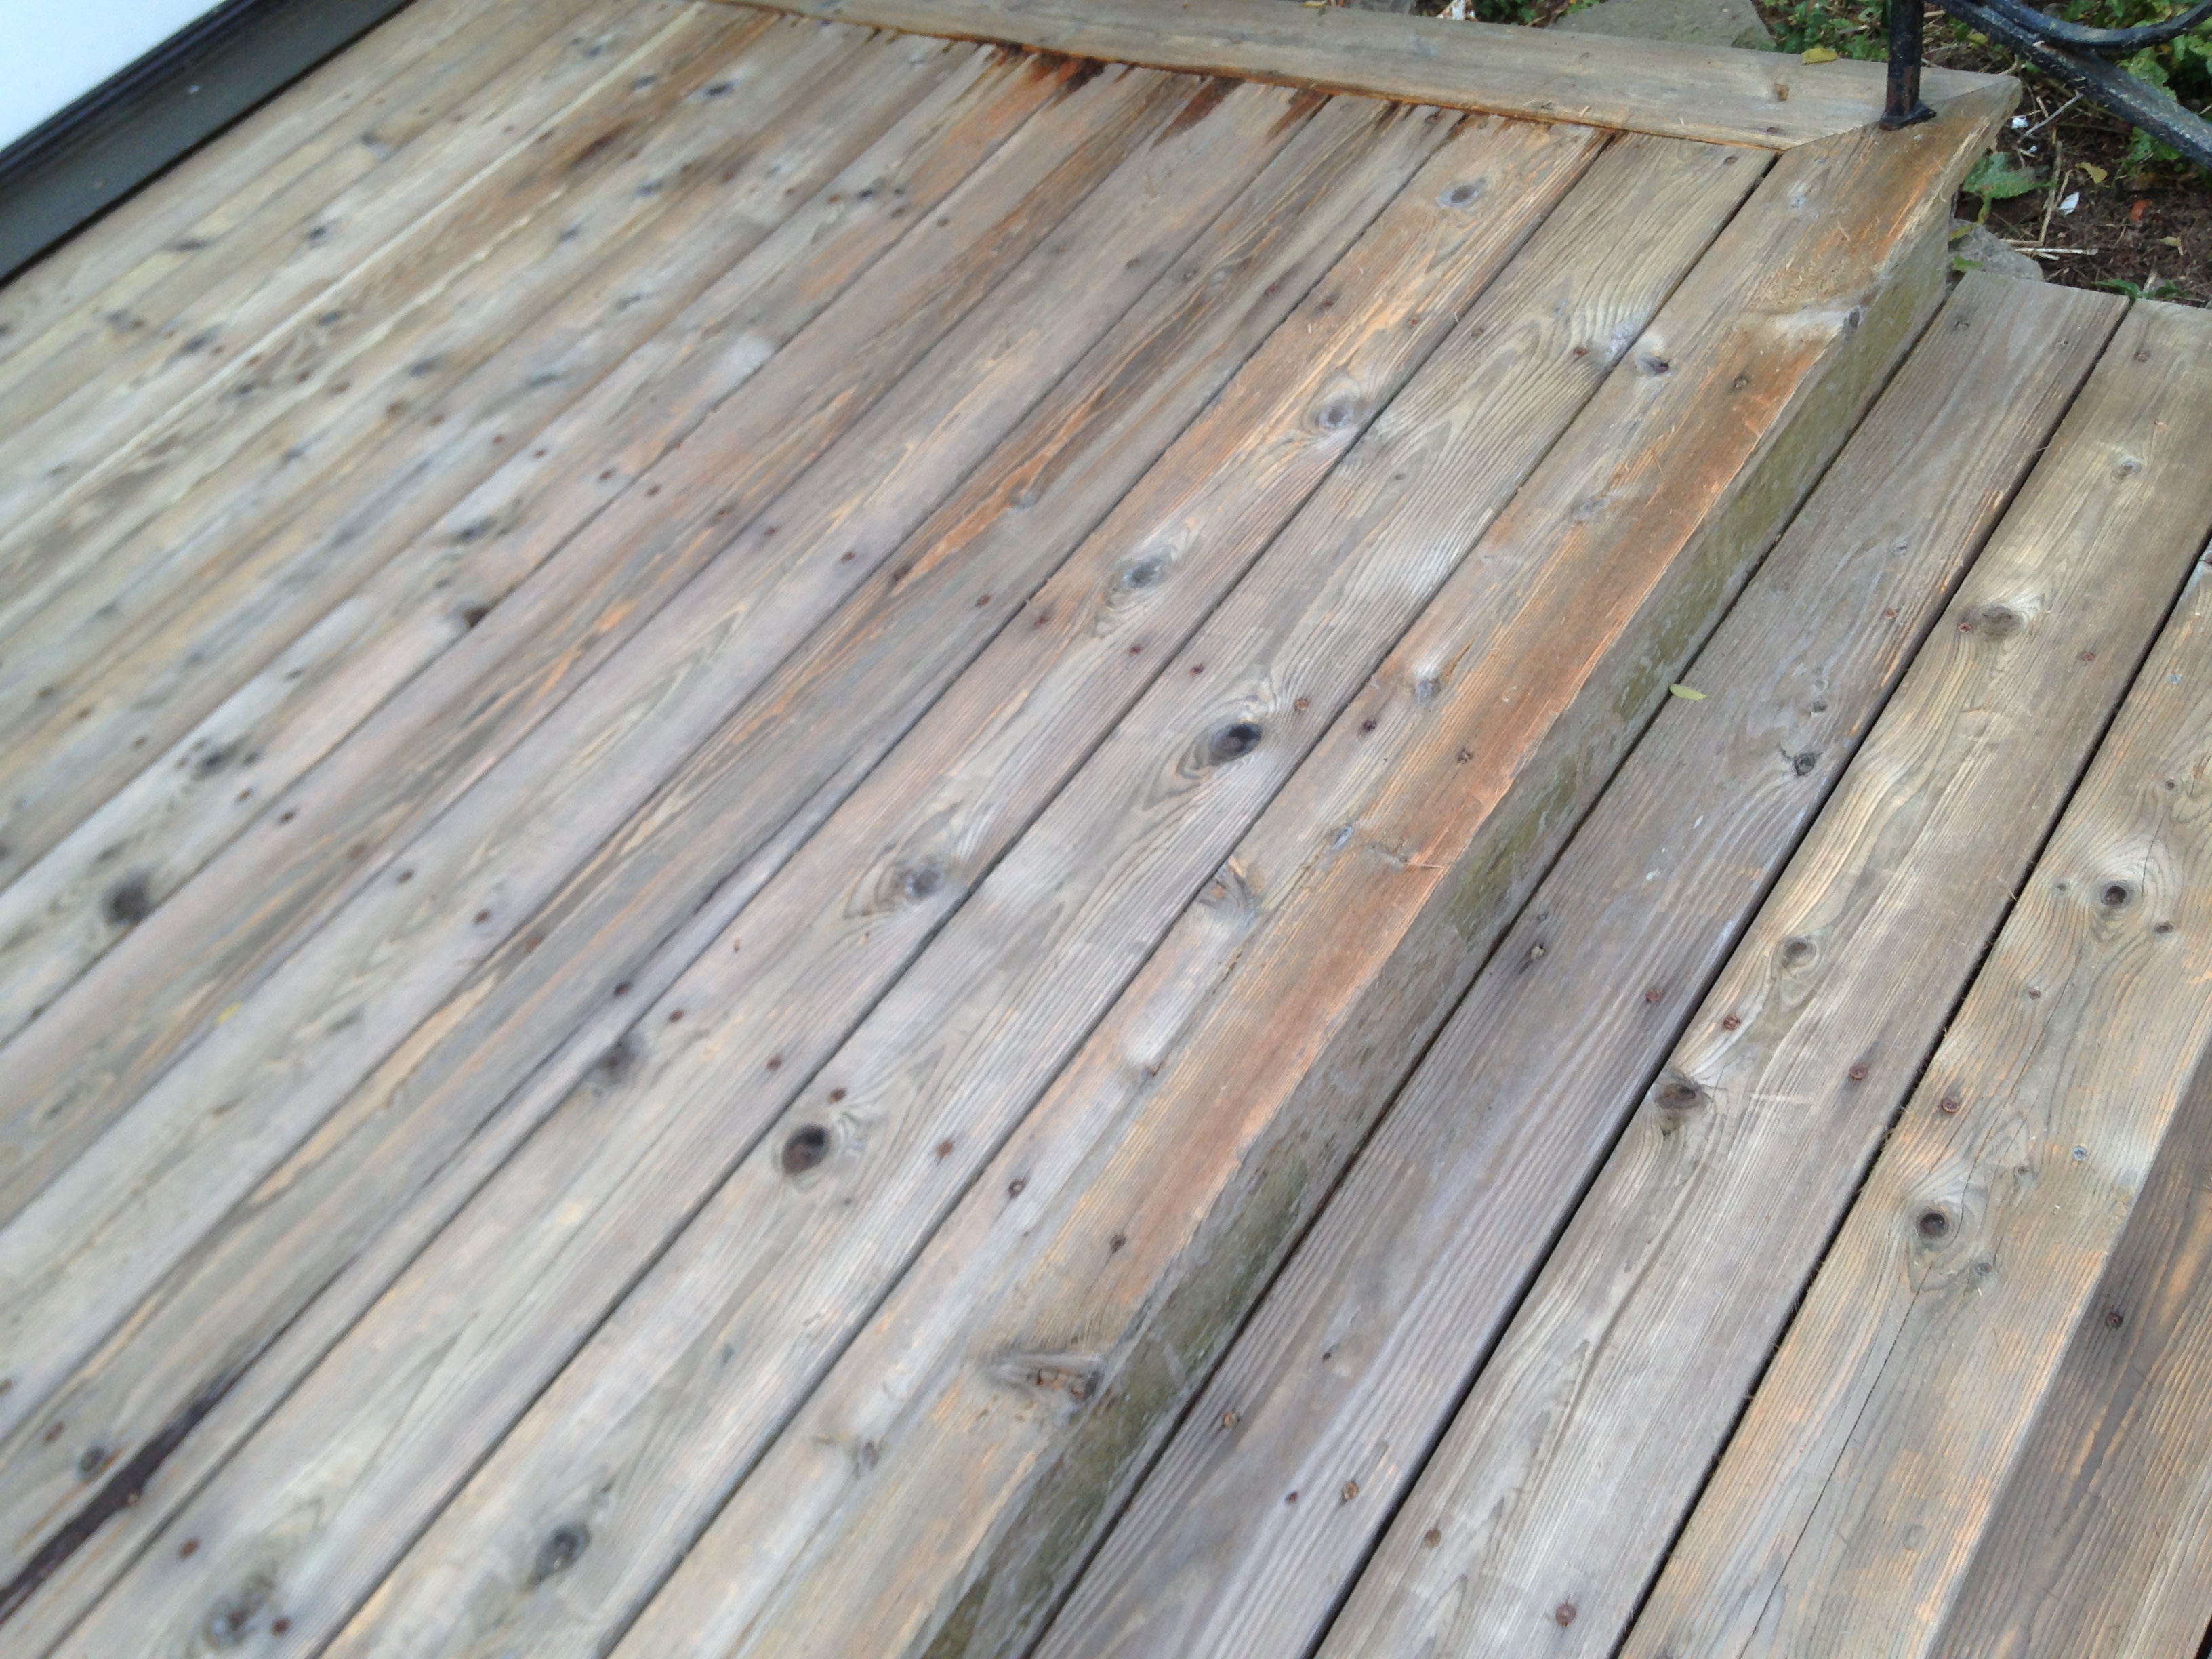 Mold And Mildew On Wood Decks Best Deck Stain Reviews Ratings